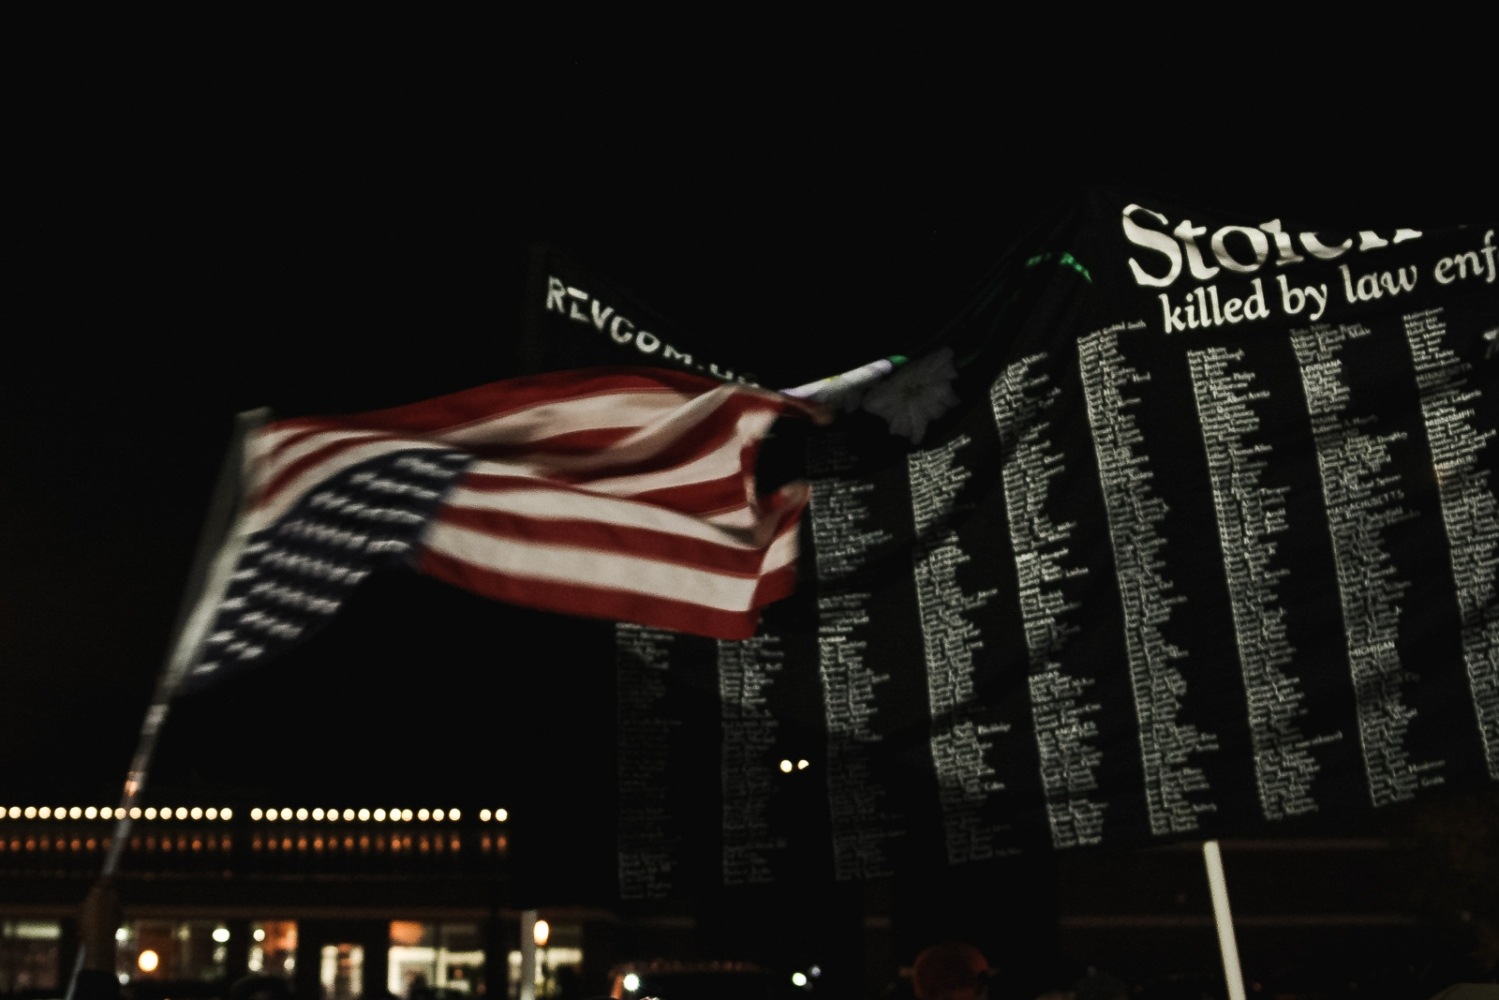 An activist waives an upside down U.S. flag next to a Stolen Lives Project banner that lists each reported individual killed by U.S. law enforcement from 1990 to 2014.